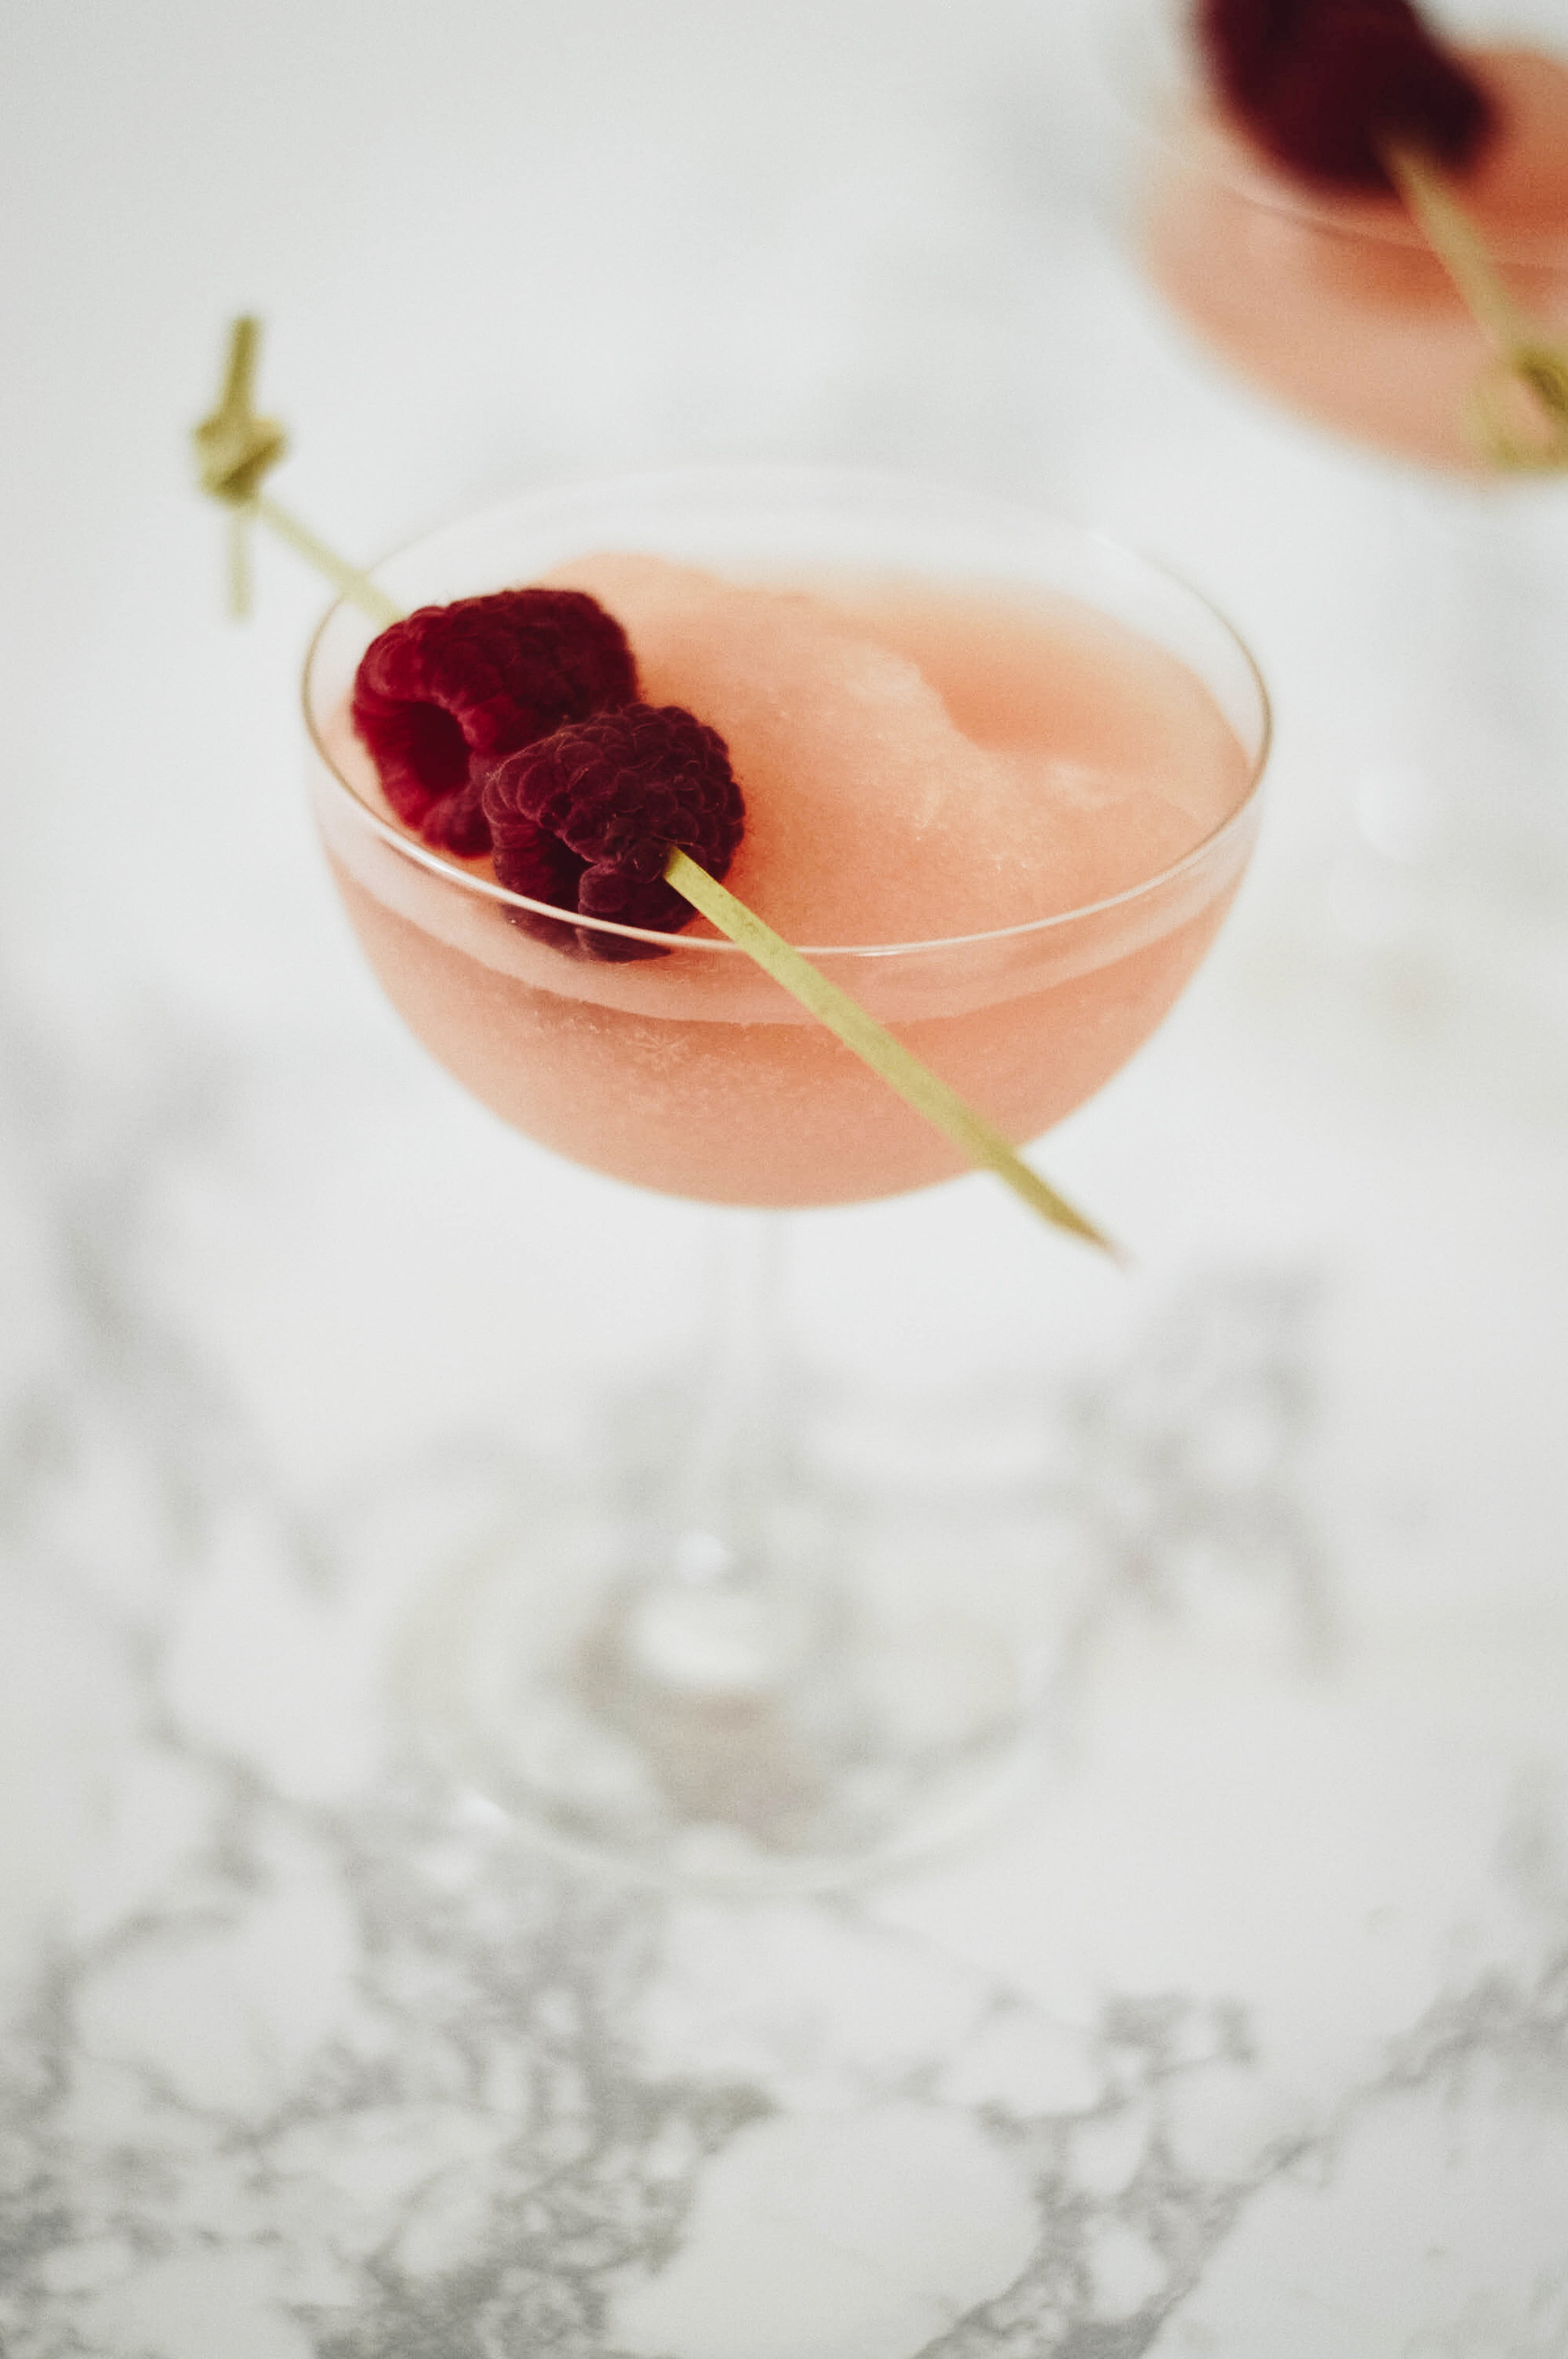 HOW-TO FROSE - - 1 Bottle Rose- 2 1/2 oz Lemon Juice- 1/2 C Sugar- 1/2 C Water- RaspberriesStart by pouring a bottle of rose into a ice cube tray, keep in mind that this will need to be done in advance! While the rose is chilling, start the simple syrup. In a sauce pan combine equal parts sugar and water. For this recipe I opted to do a 1/2 C of both. Heat until sugar is dissolved. Once rose has chilled, combine with simple syrup, 2 1/2 oz. lemon juice, rose cubes, and blend. For a slushier beverage you can also include additional ice.Serve with fresh berry garnish and enjoy!